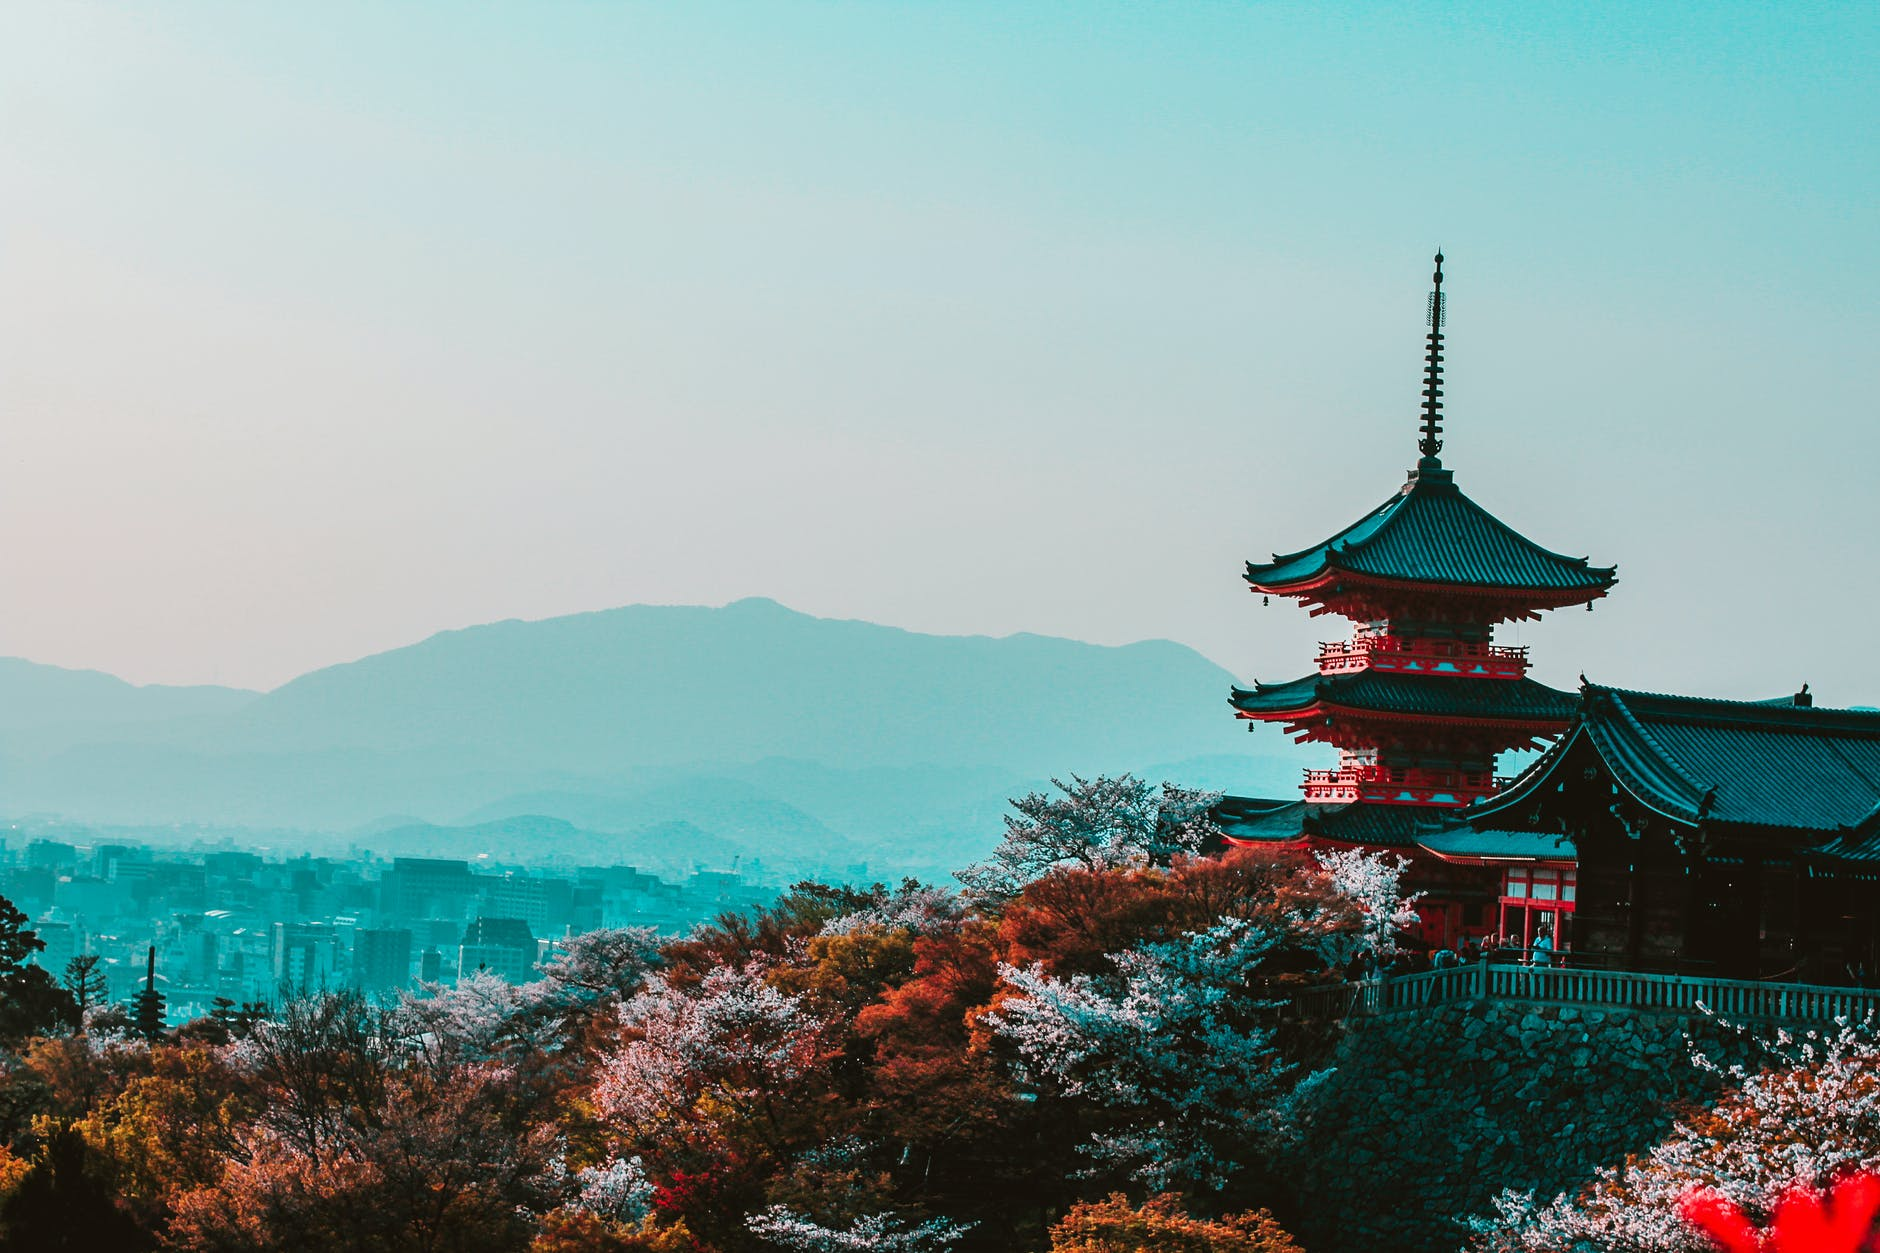 red and black temple surrounded by trees photo